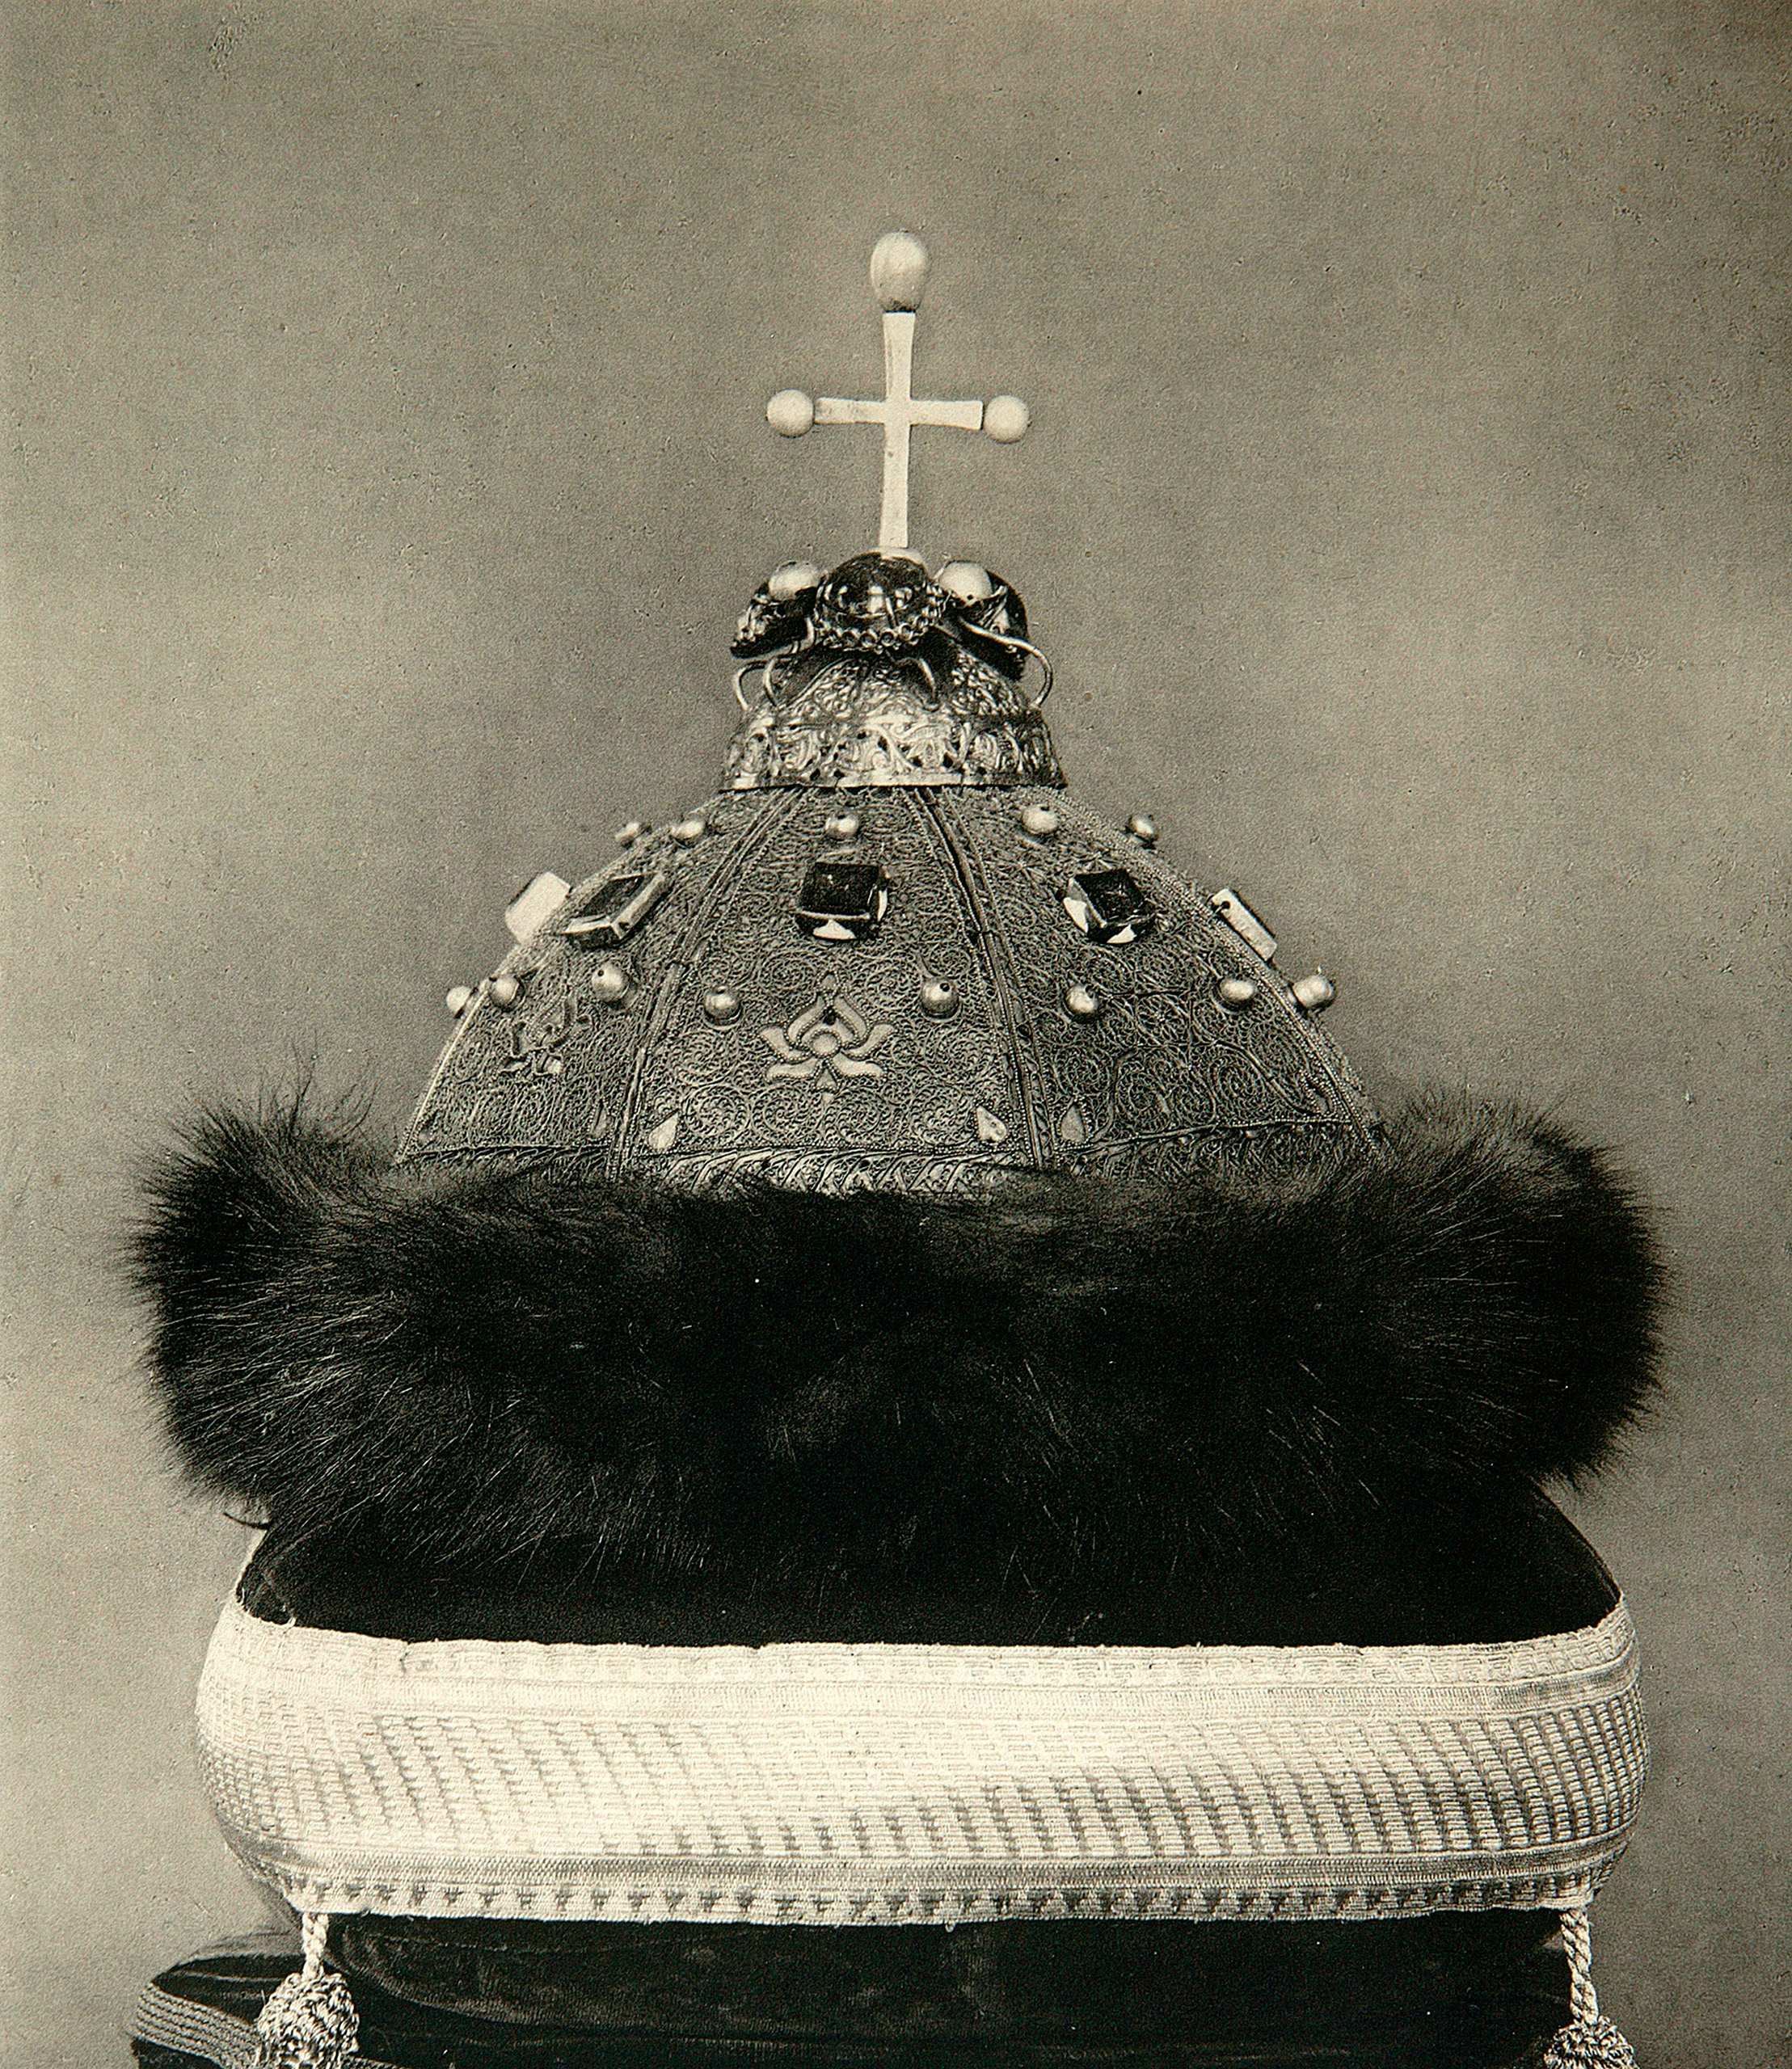 The Monomakh's Cap, before 1884. The Monomakh's Cap was the crown of all Muscovite Grand Princes and Tsars from Dmitri Donskoi to Peter the Great, who replaced it with the Imperial Crown of Russia in 1721.